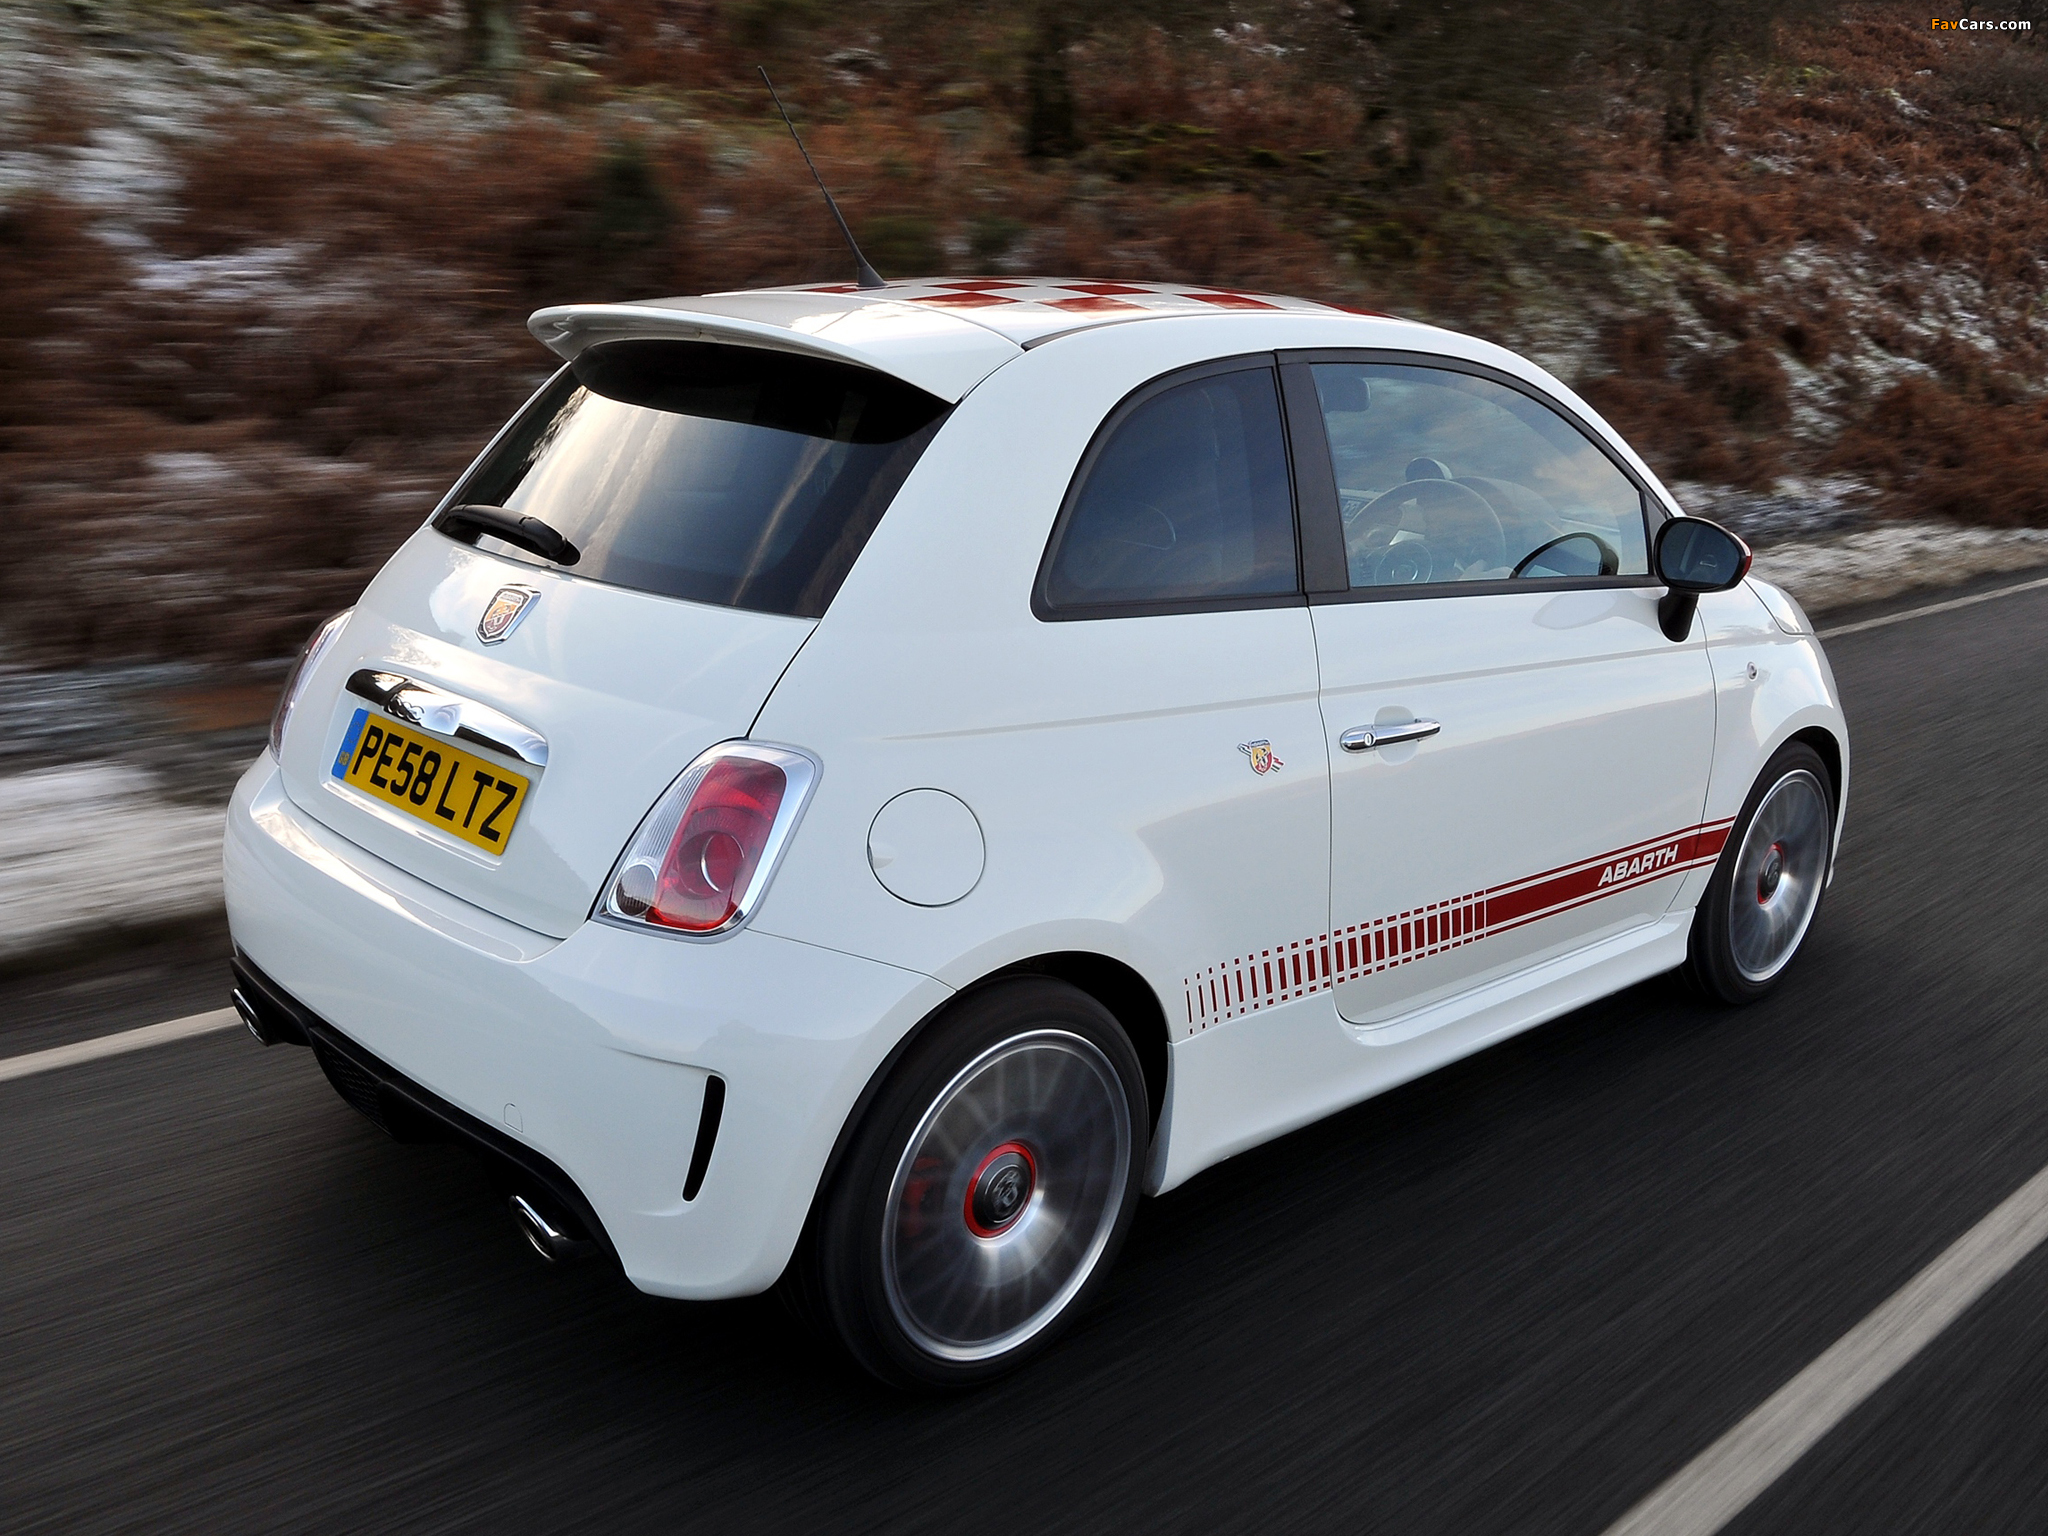 Abarth 500 Uk Spec 2009 Images 2048x1536